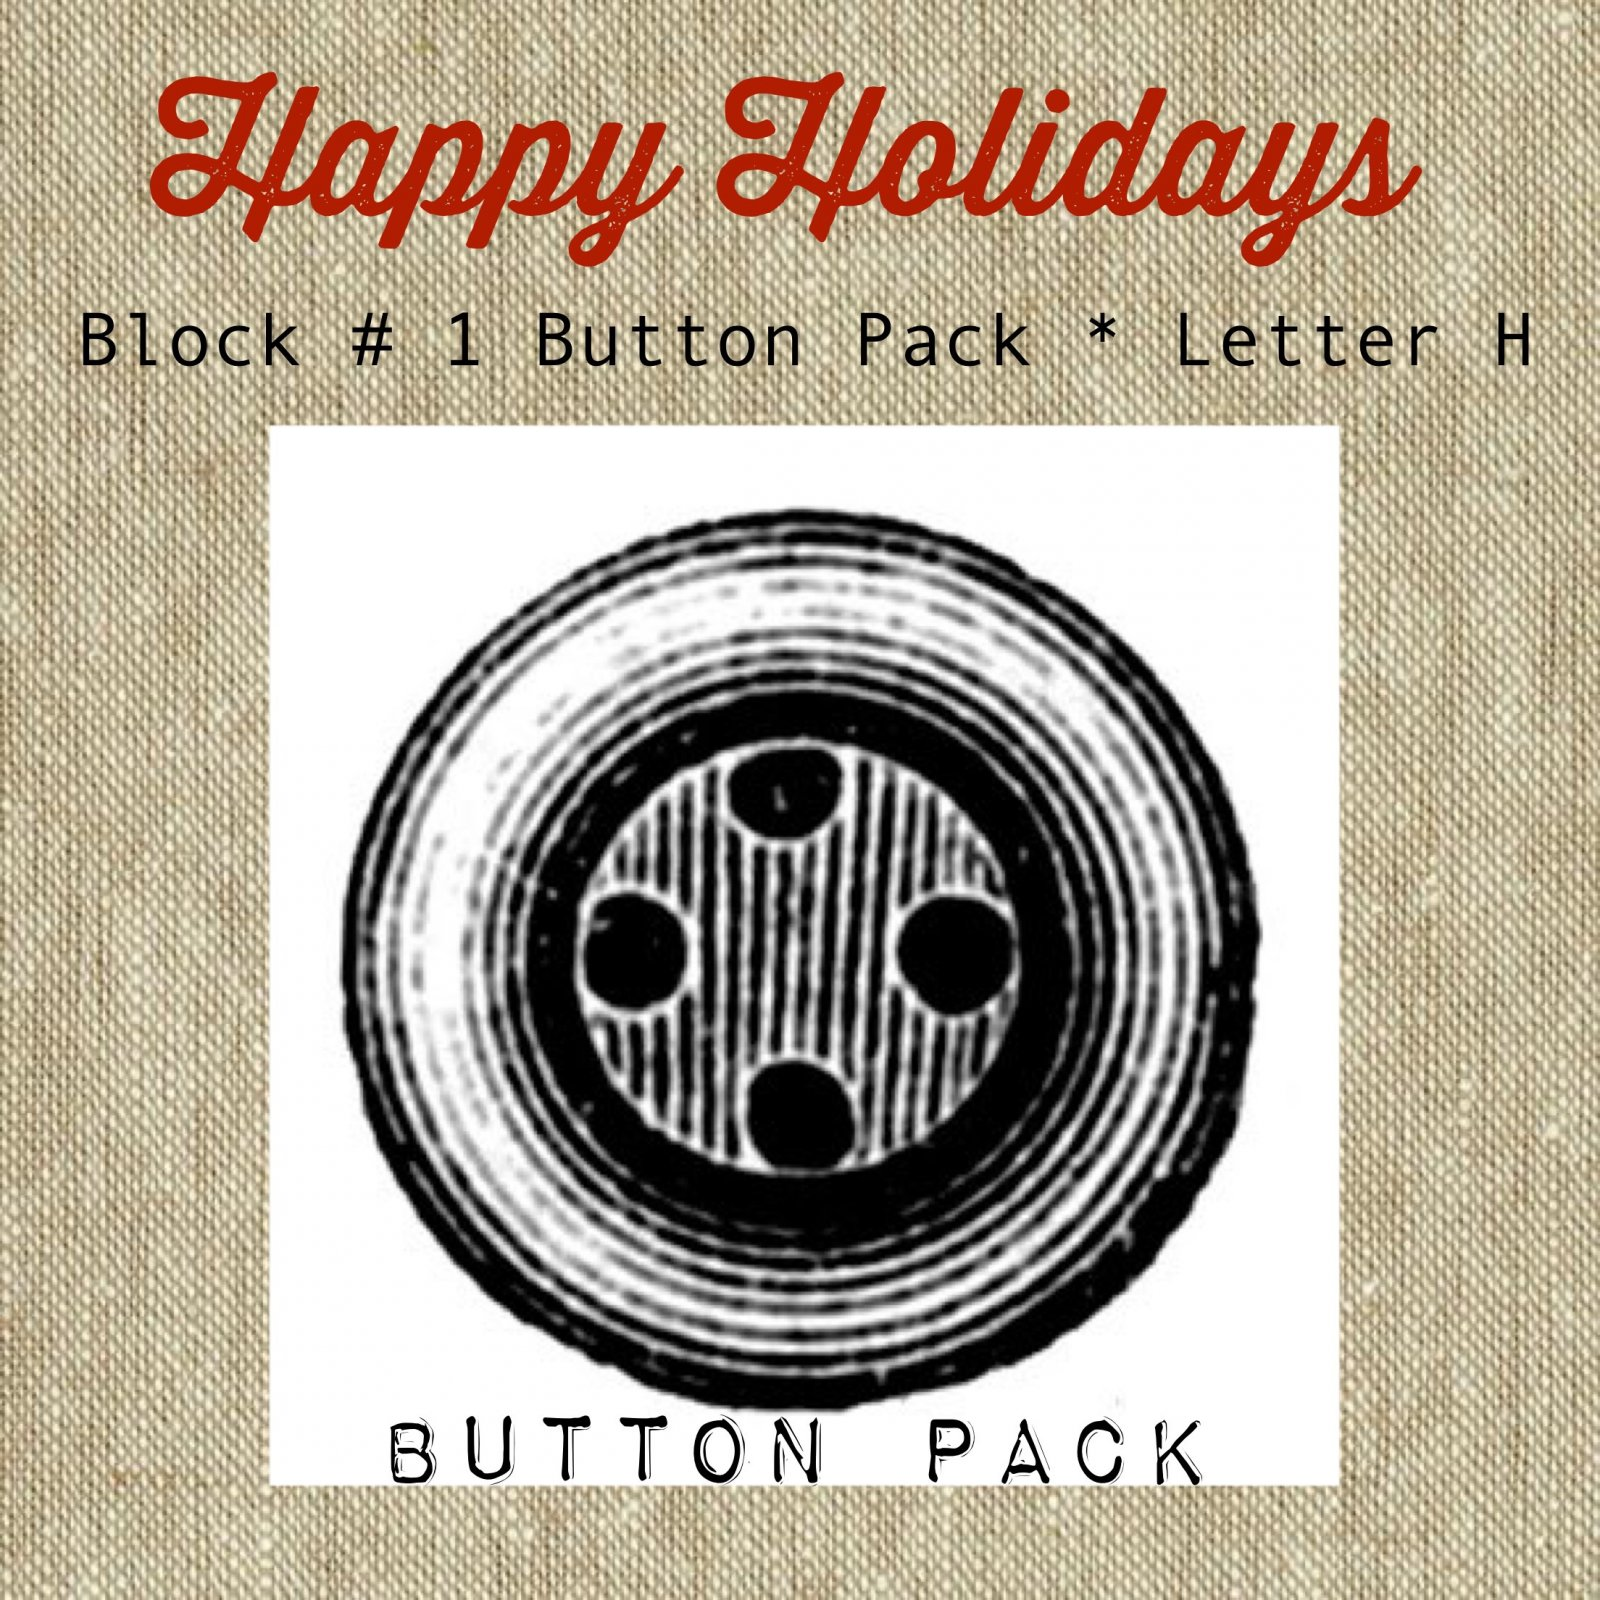 Happy Holidays Block #1 Letter H Button Pack